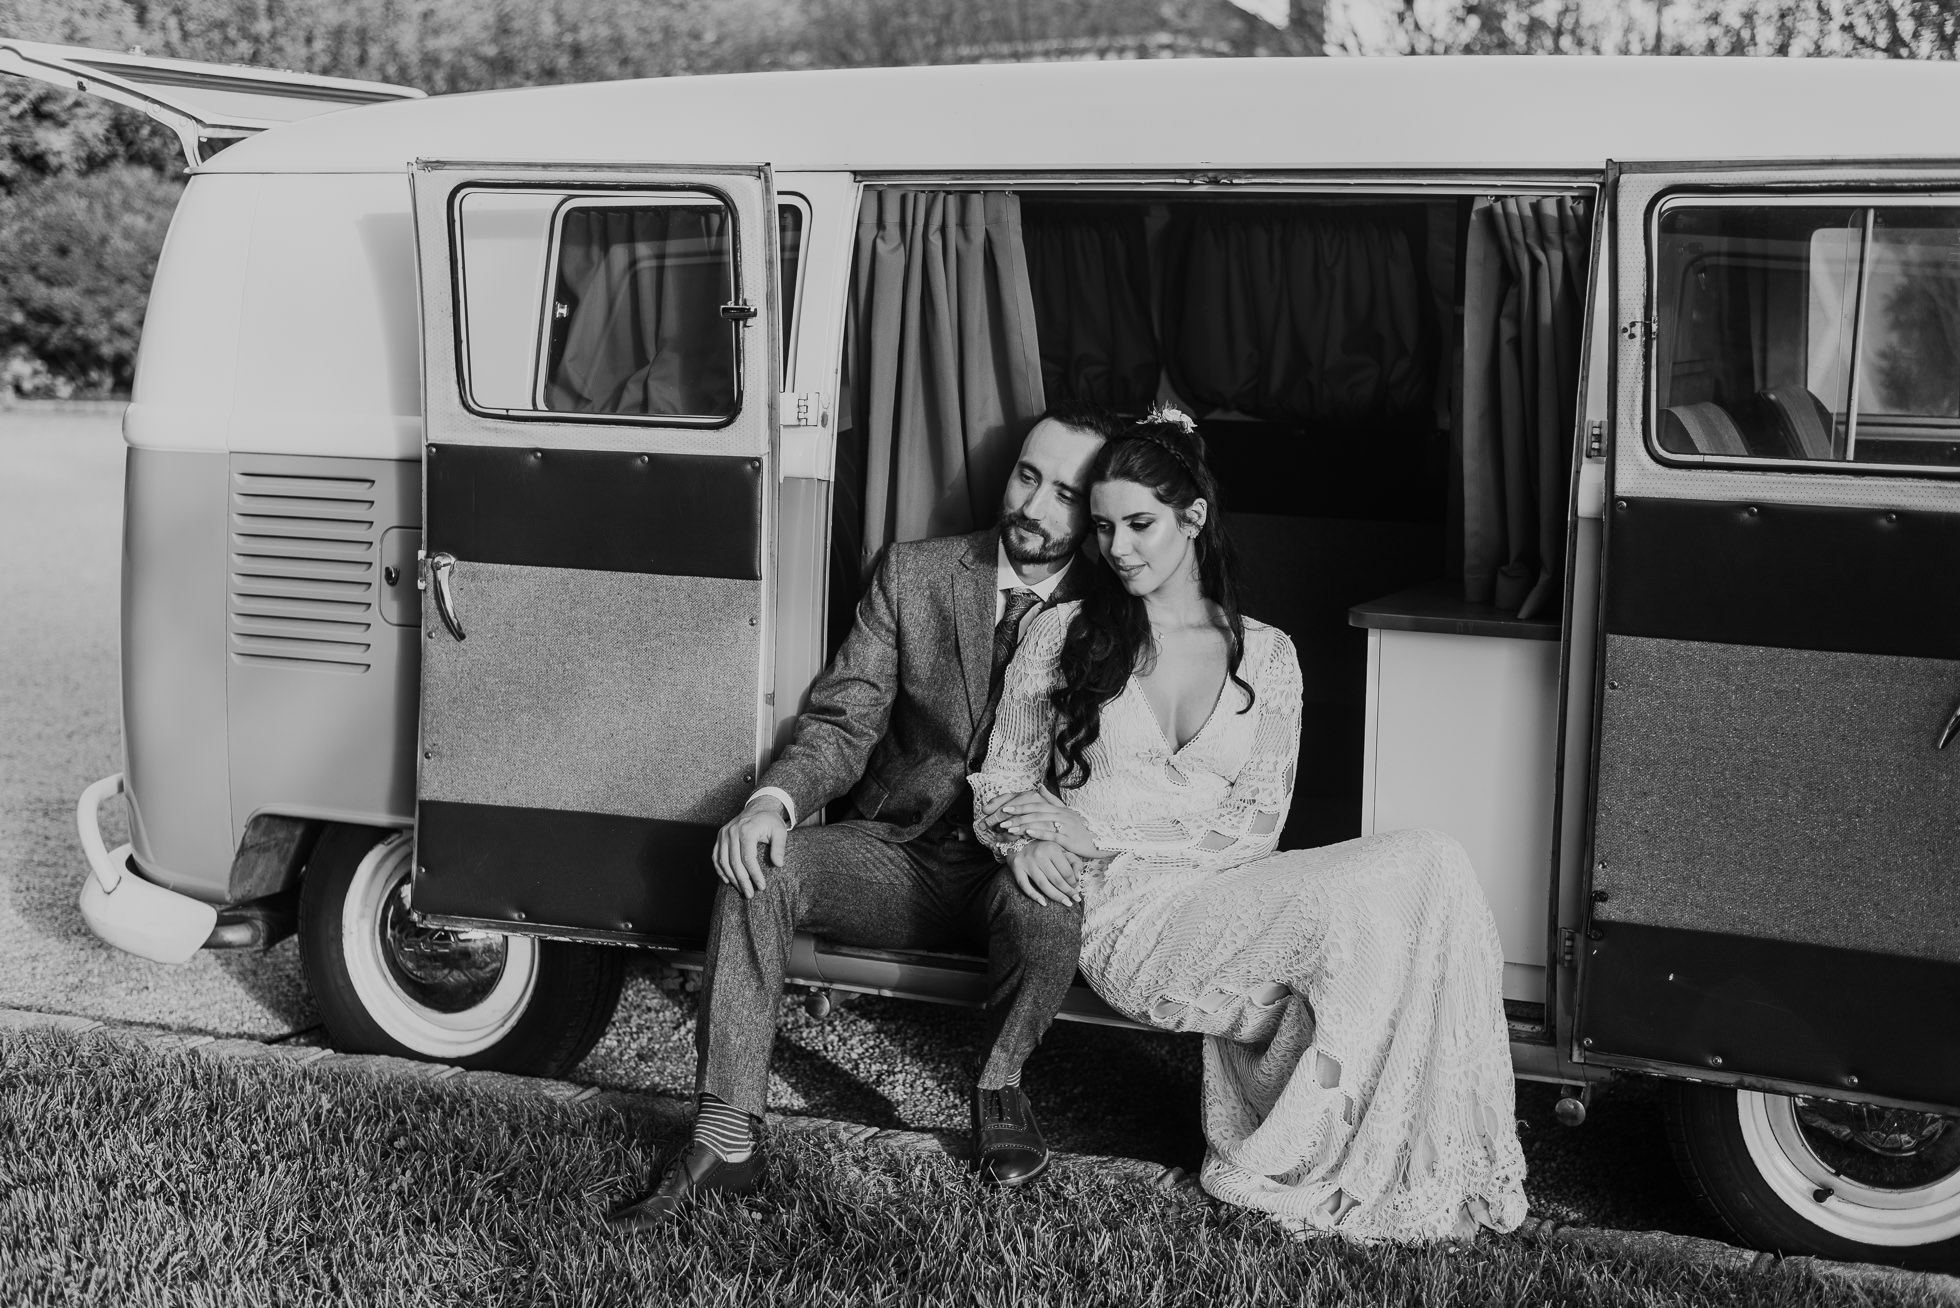 VW van wedding photos